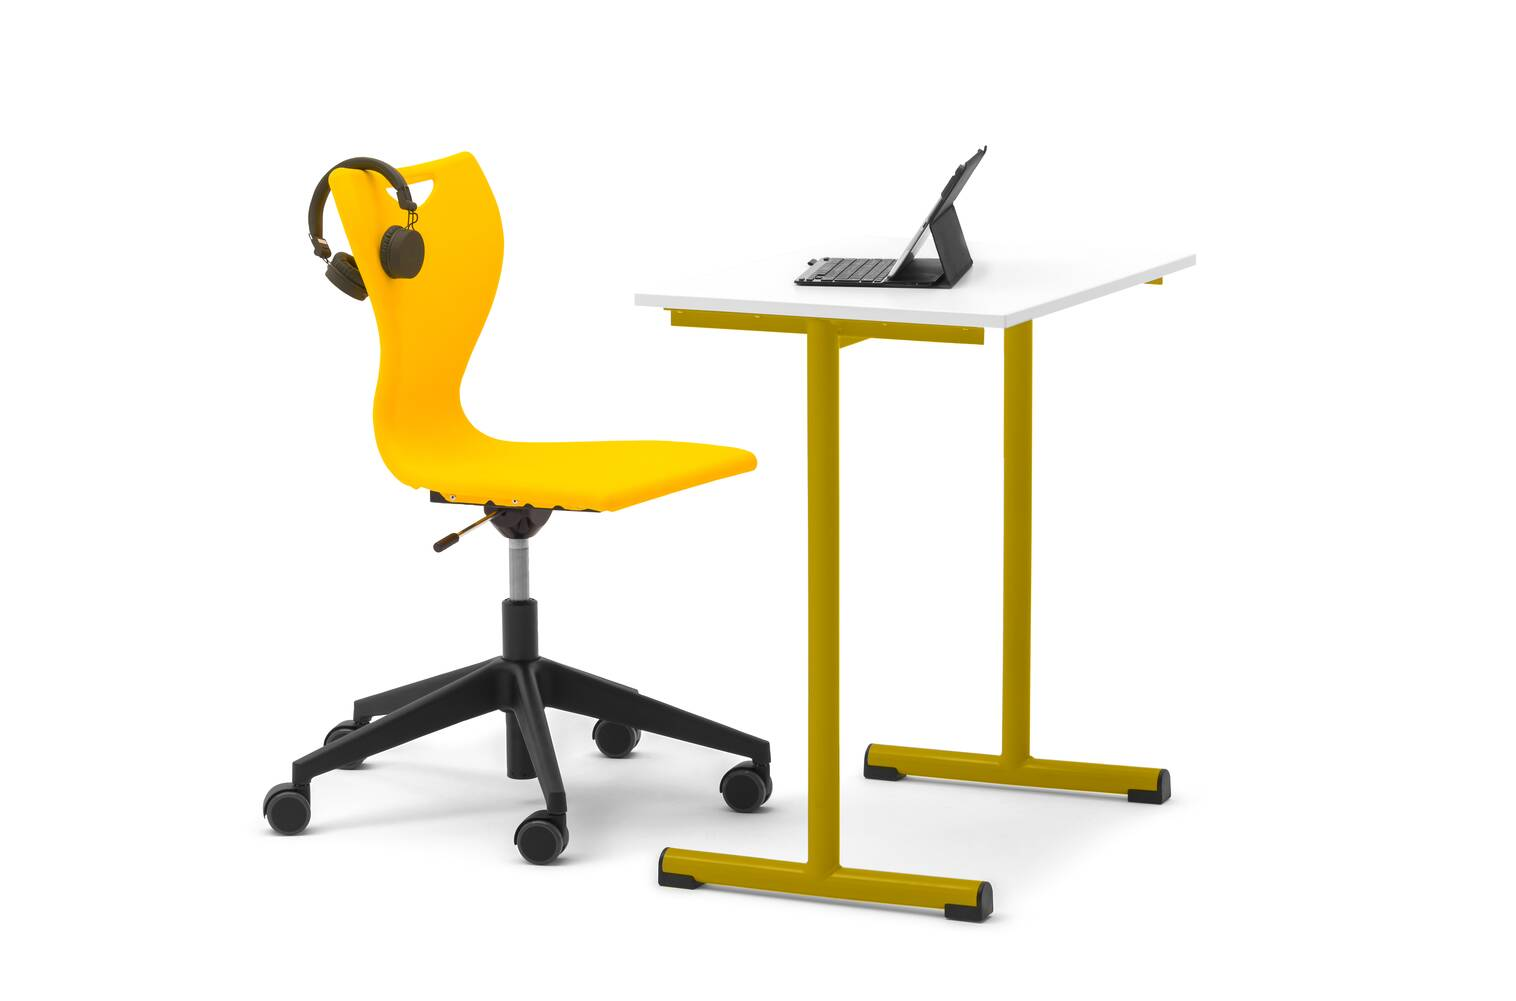 Gispen EDUU Work table with yellow frame and white tabletop and EDUU Slim Work chair with styling front left view